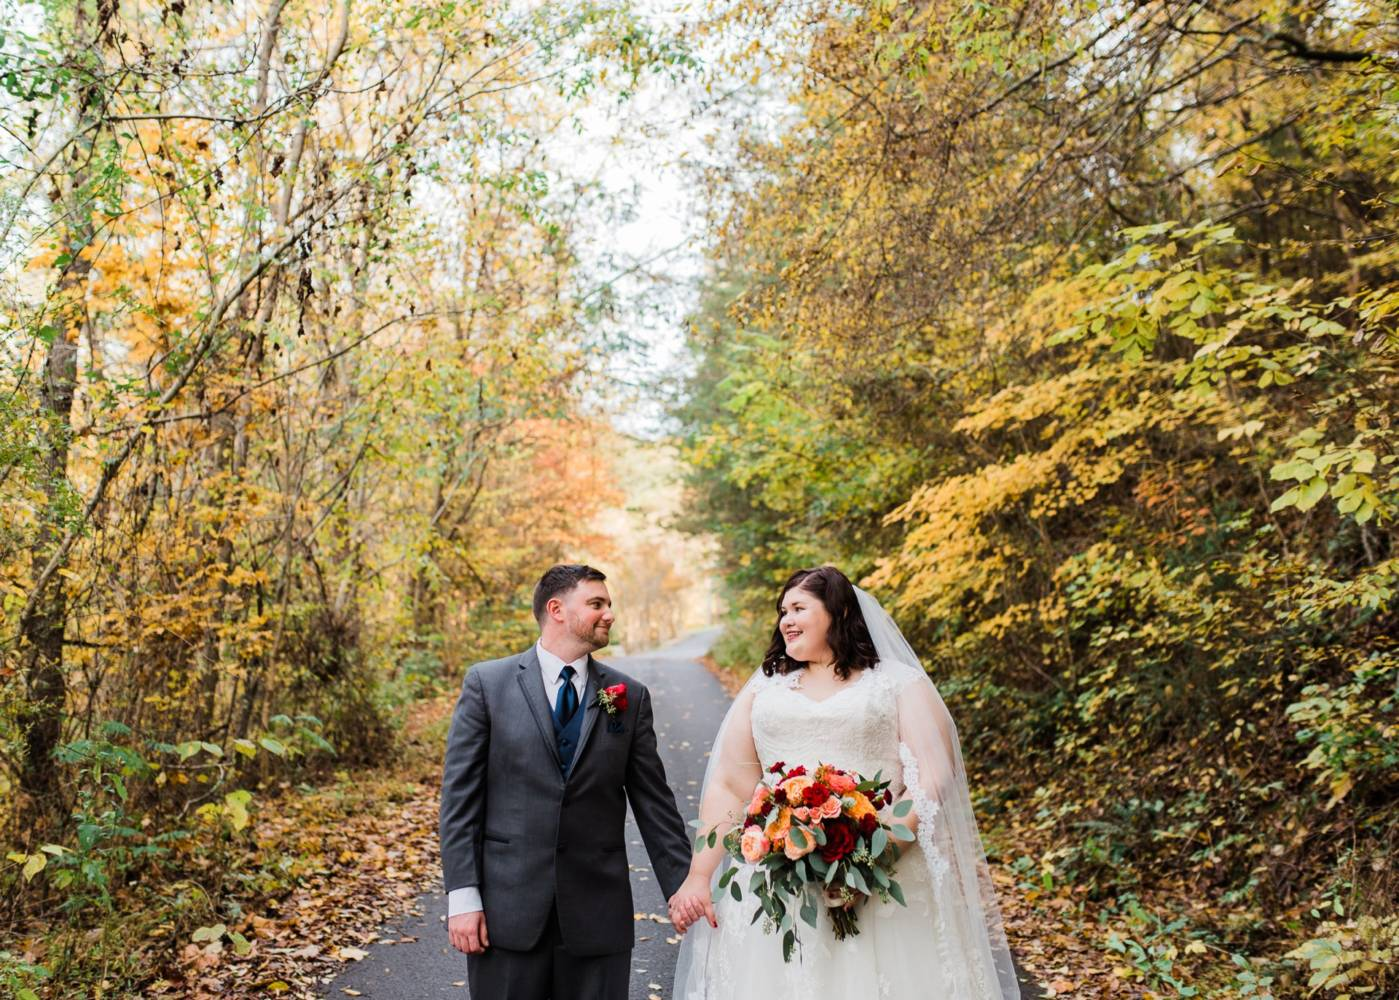 Autumn wedding bride and groom